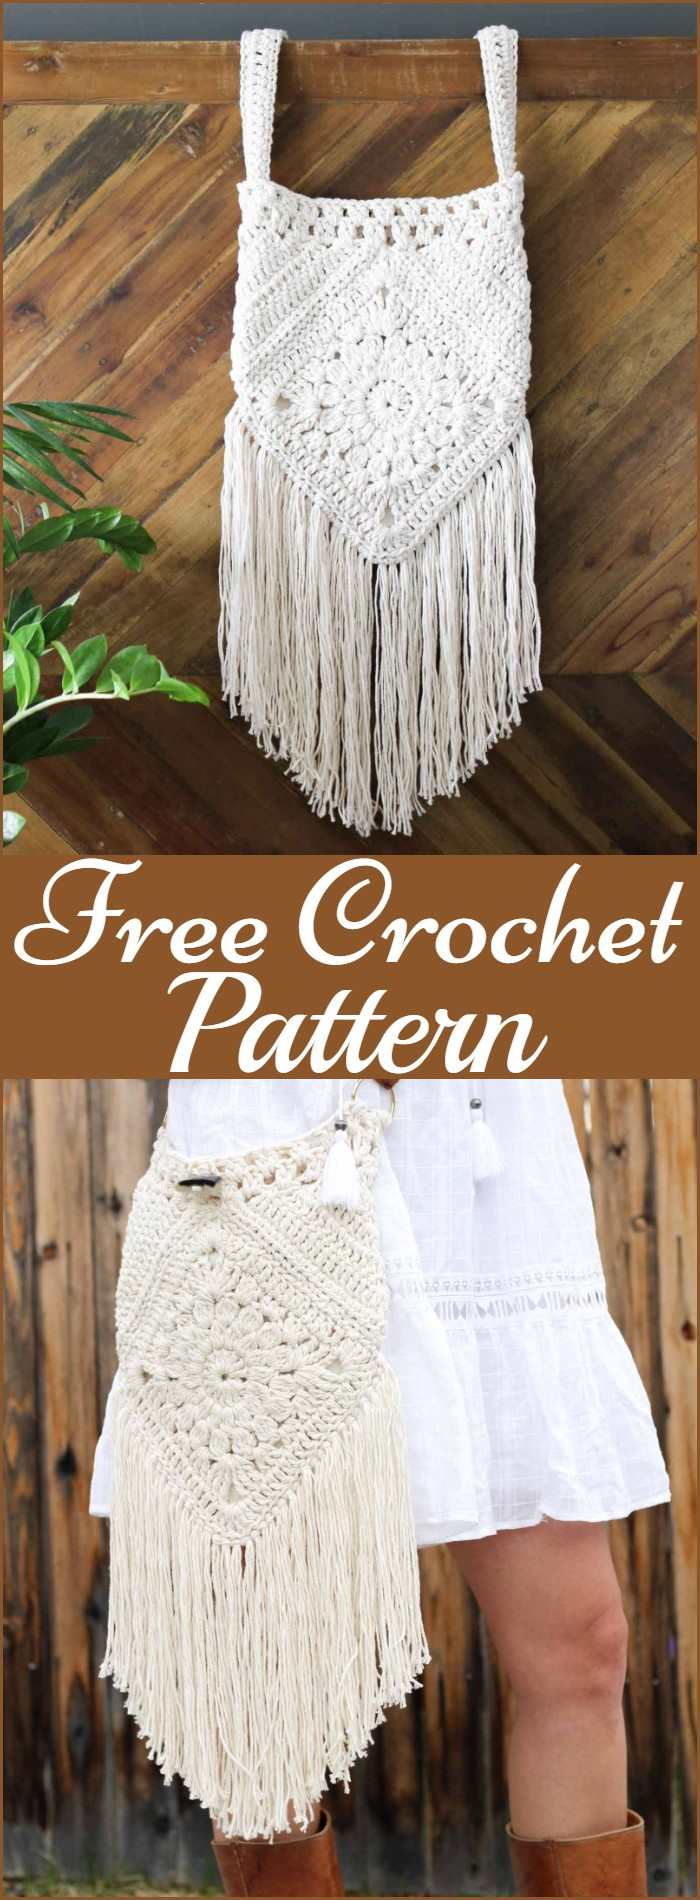 Urban Nomad Boho Bag Free Crochet Pattern